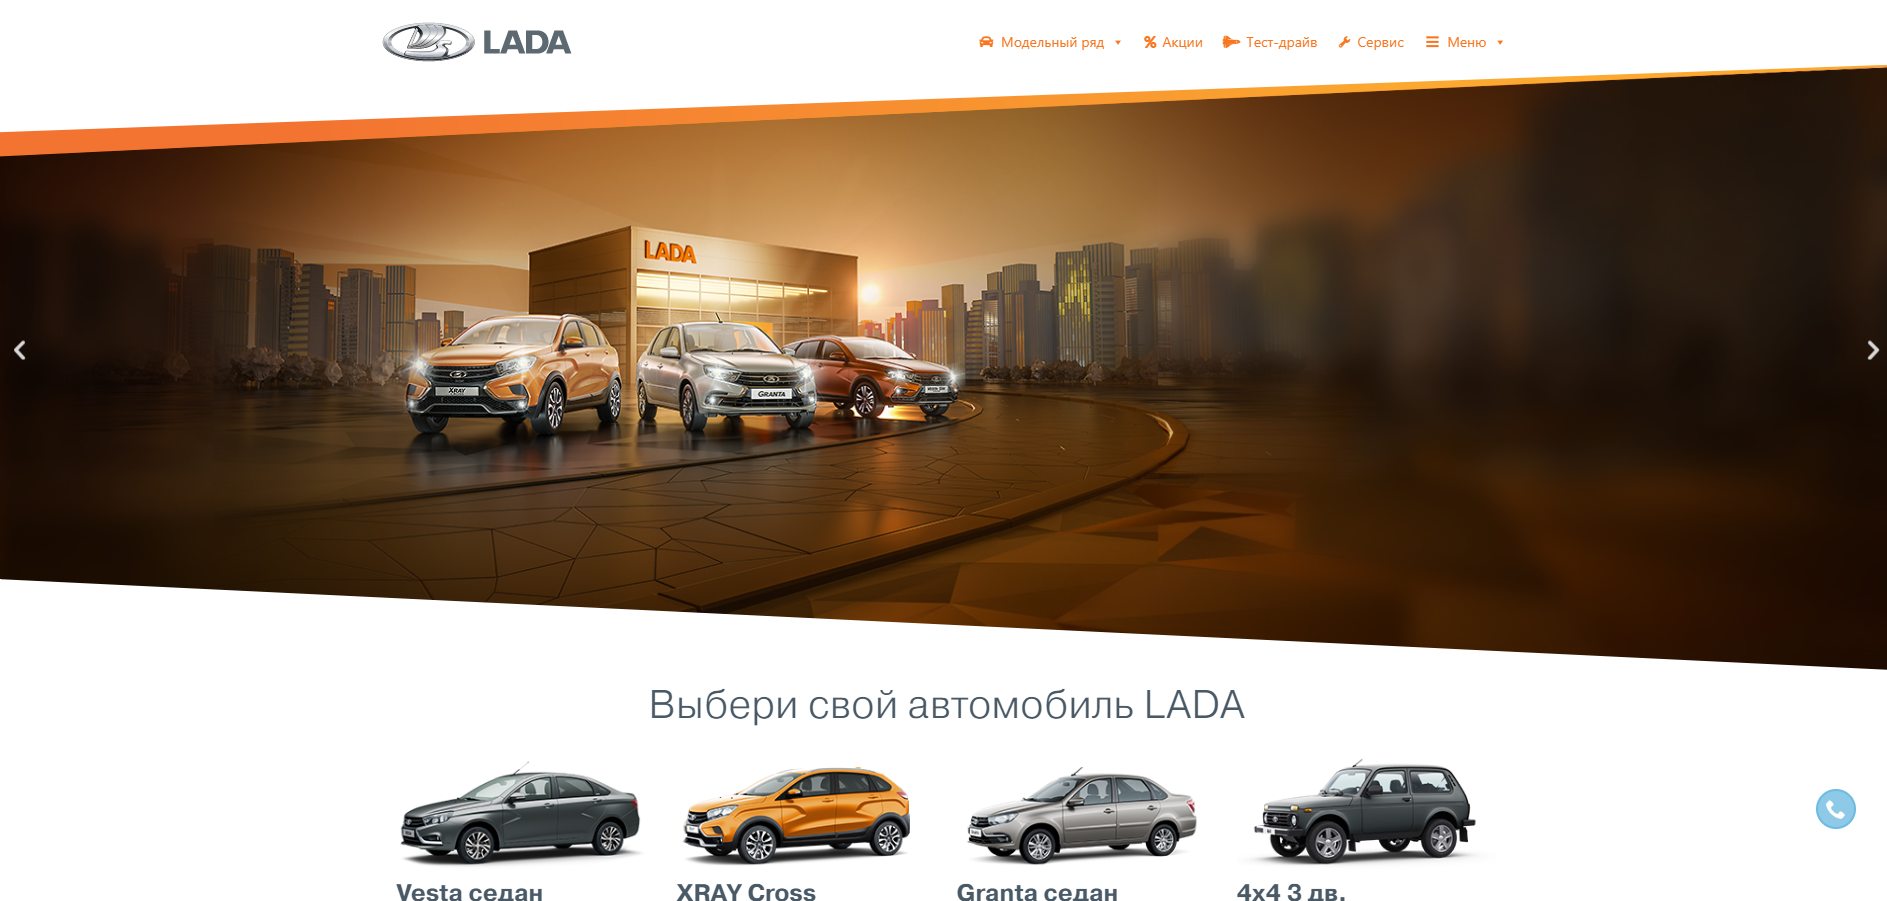 Lada-website-redesign-1